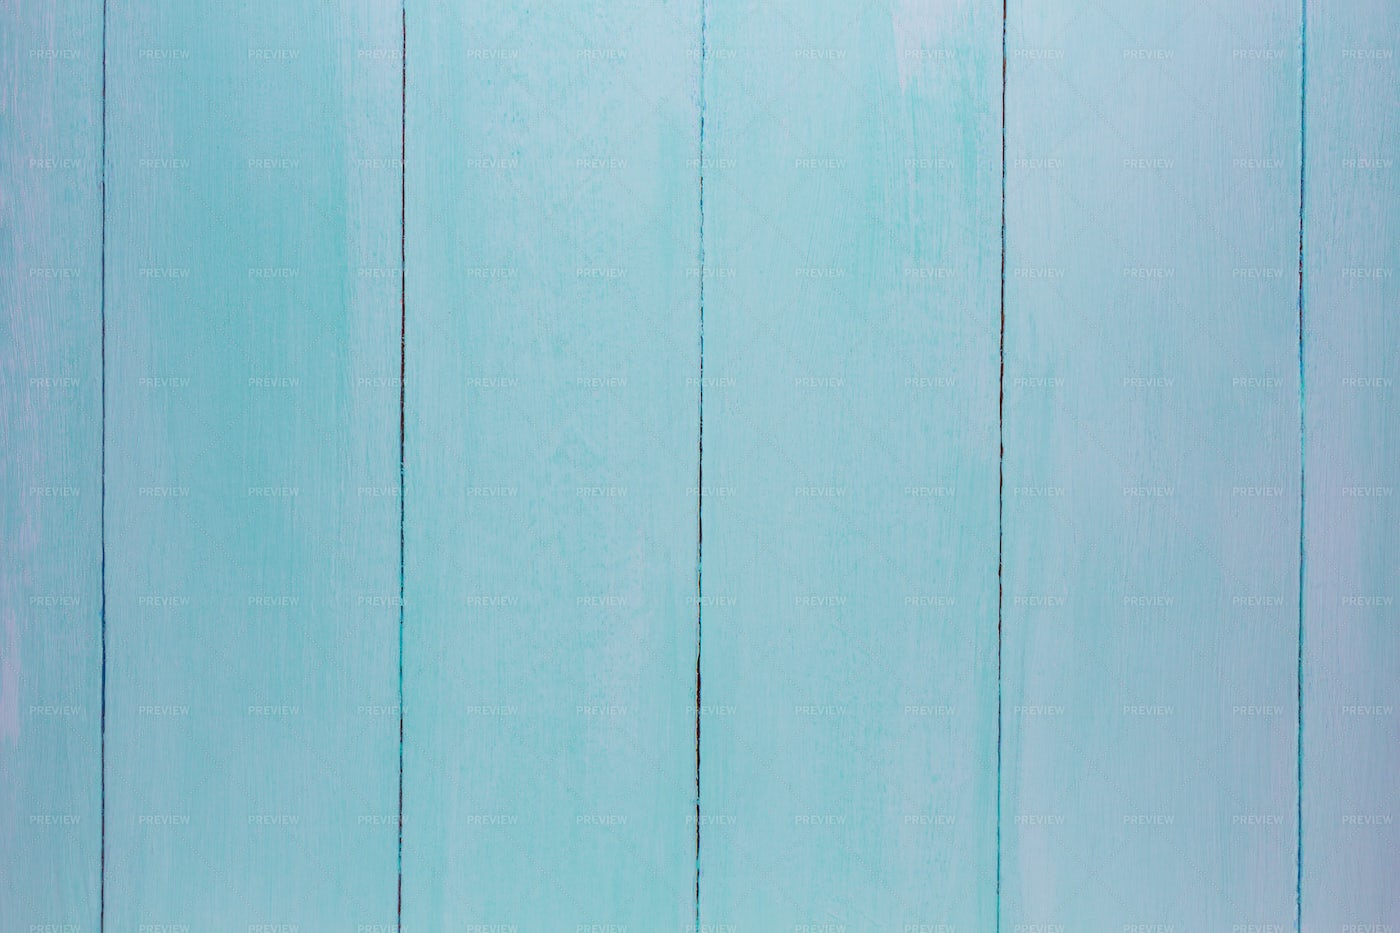 Turquoise Wooden Boards: Stock Photos